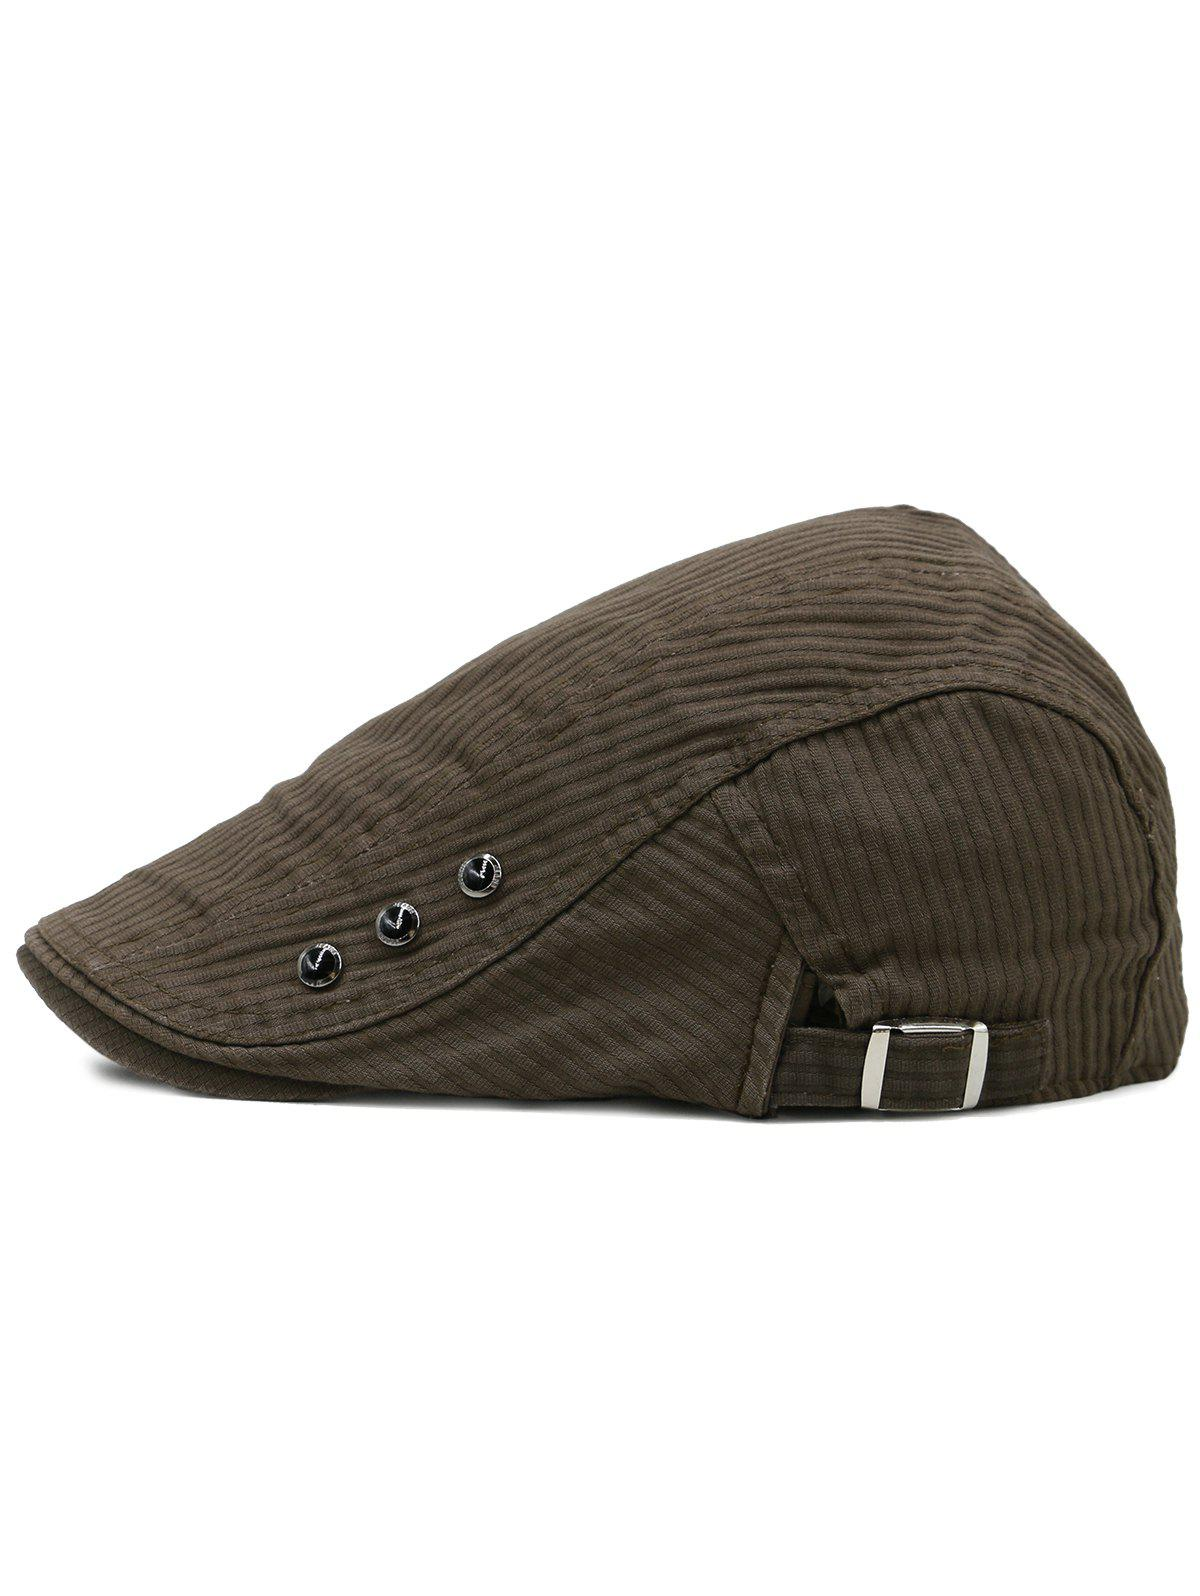 Striped Pattern Rivets Adjustable Cabbie Hat - COFFEE